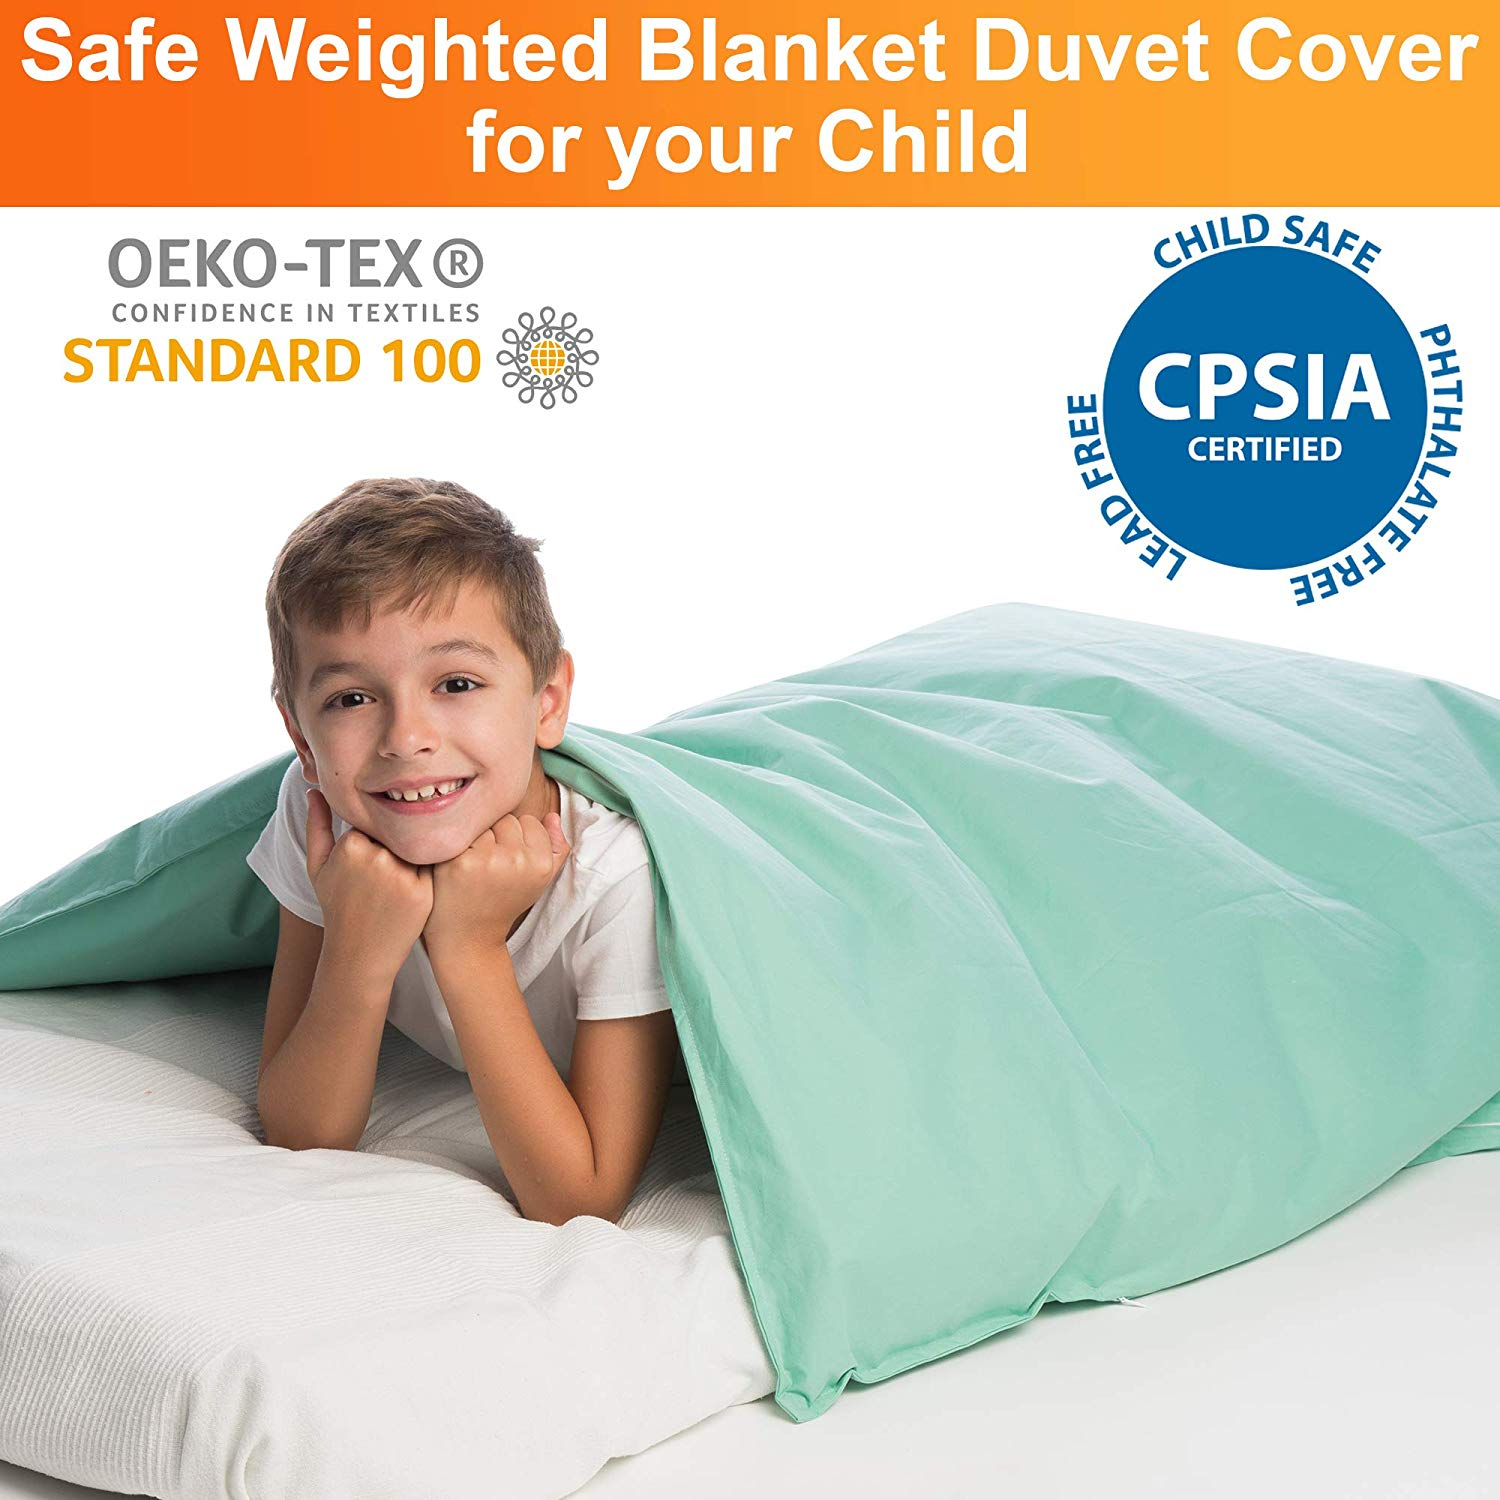 Waterproof Duvet Cover For Kids Weighted Blankets 41 X 60 Hazli Collection